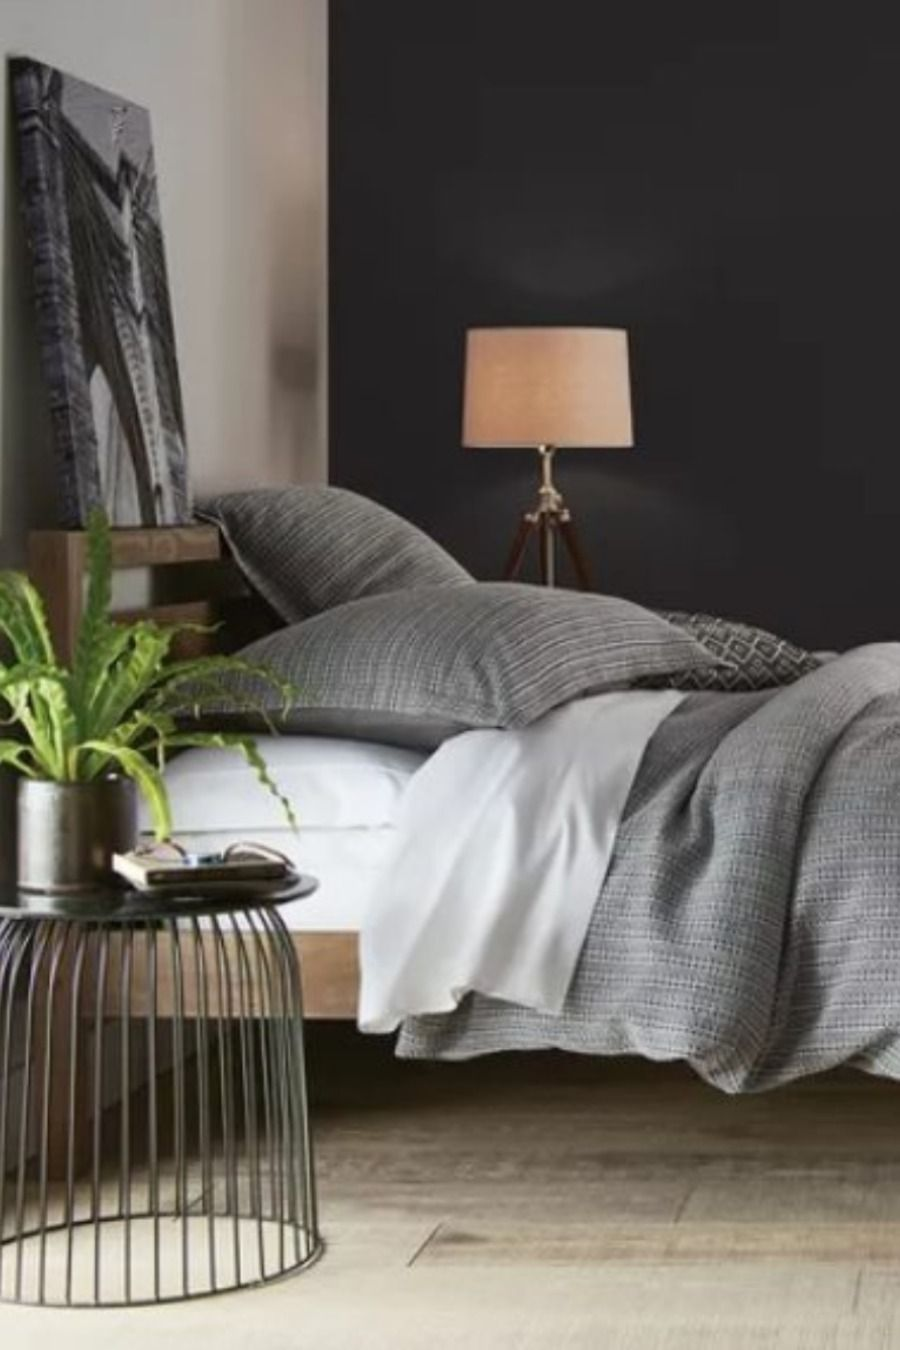 Colour Trends 2021 by Behr Paint in 2020   Maximalist decor, Bedroom colors, Interior design